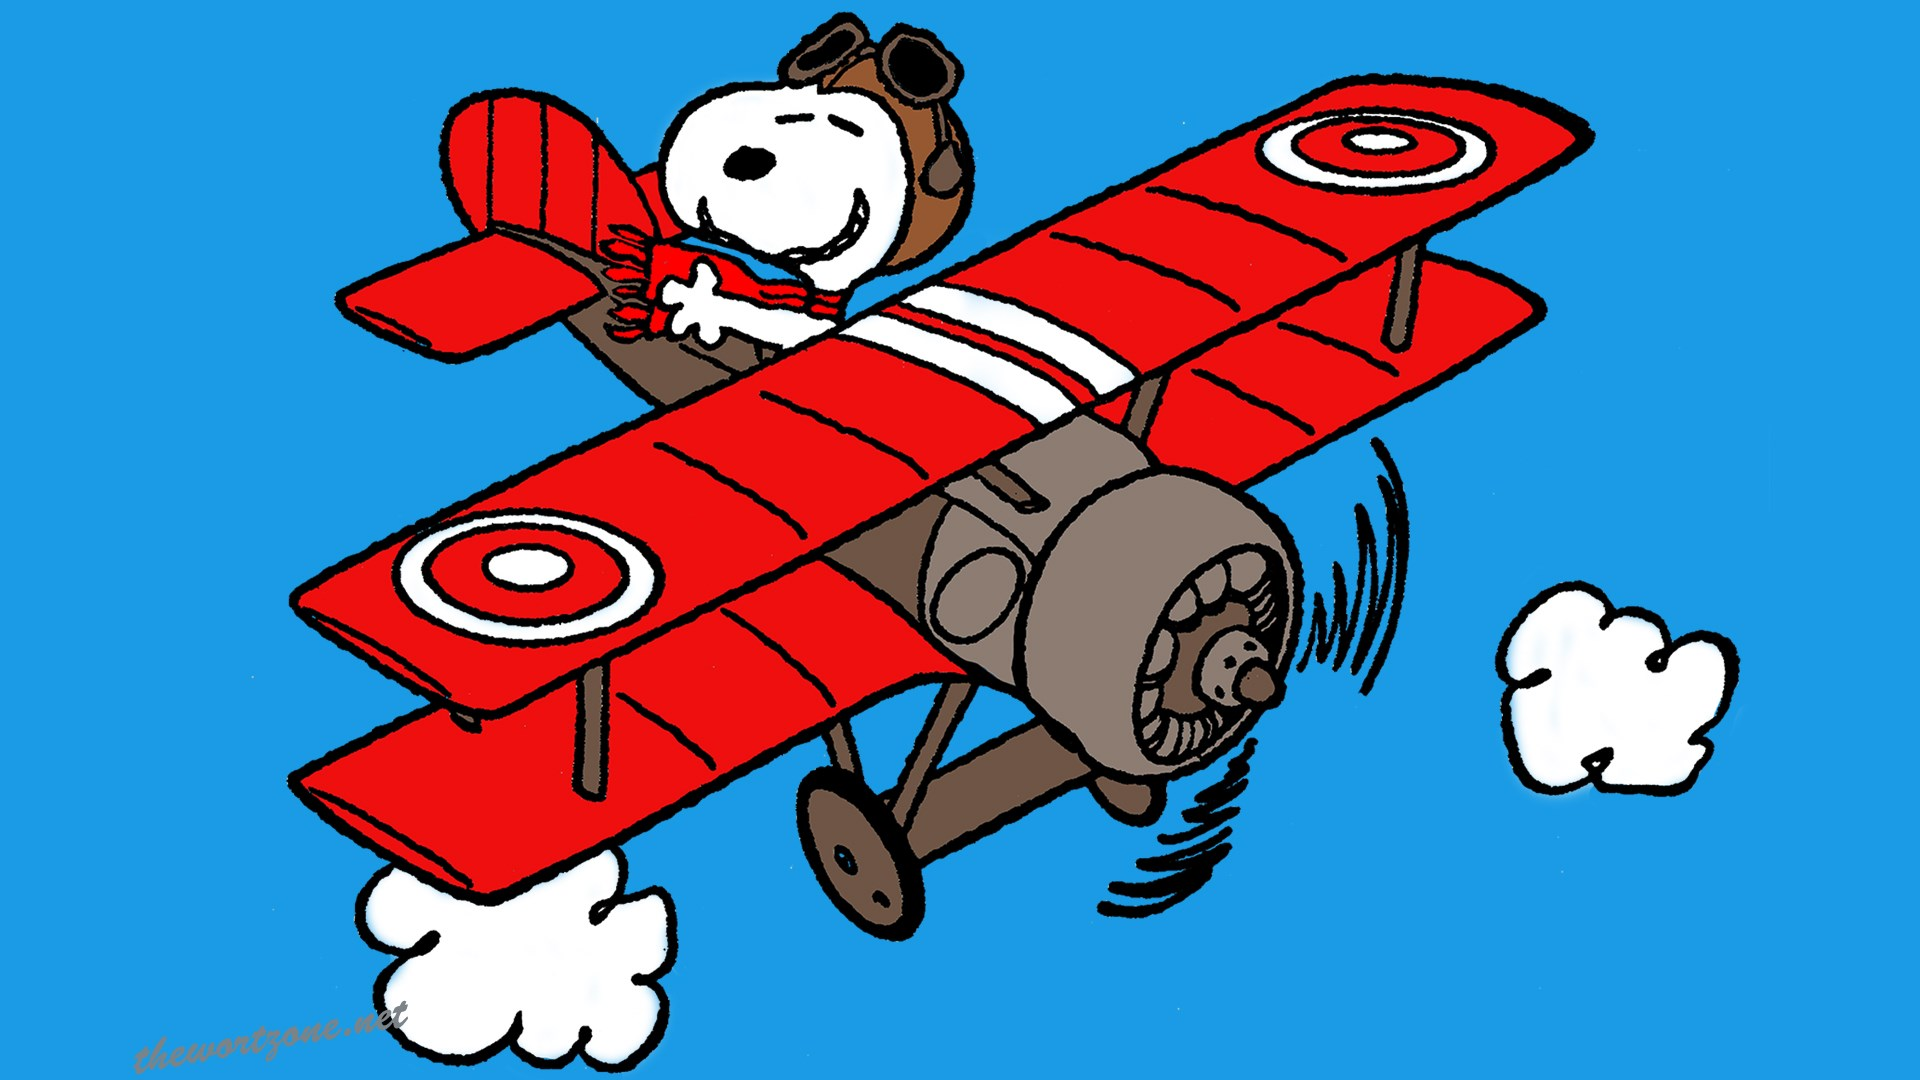 free-computer-for-snoopy-wallpaper-wpc9001329